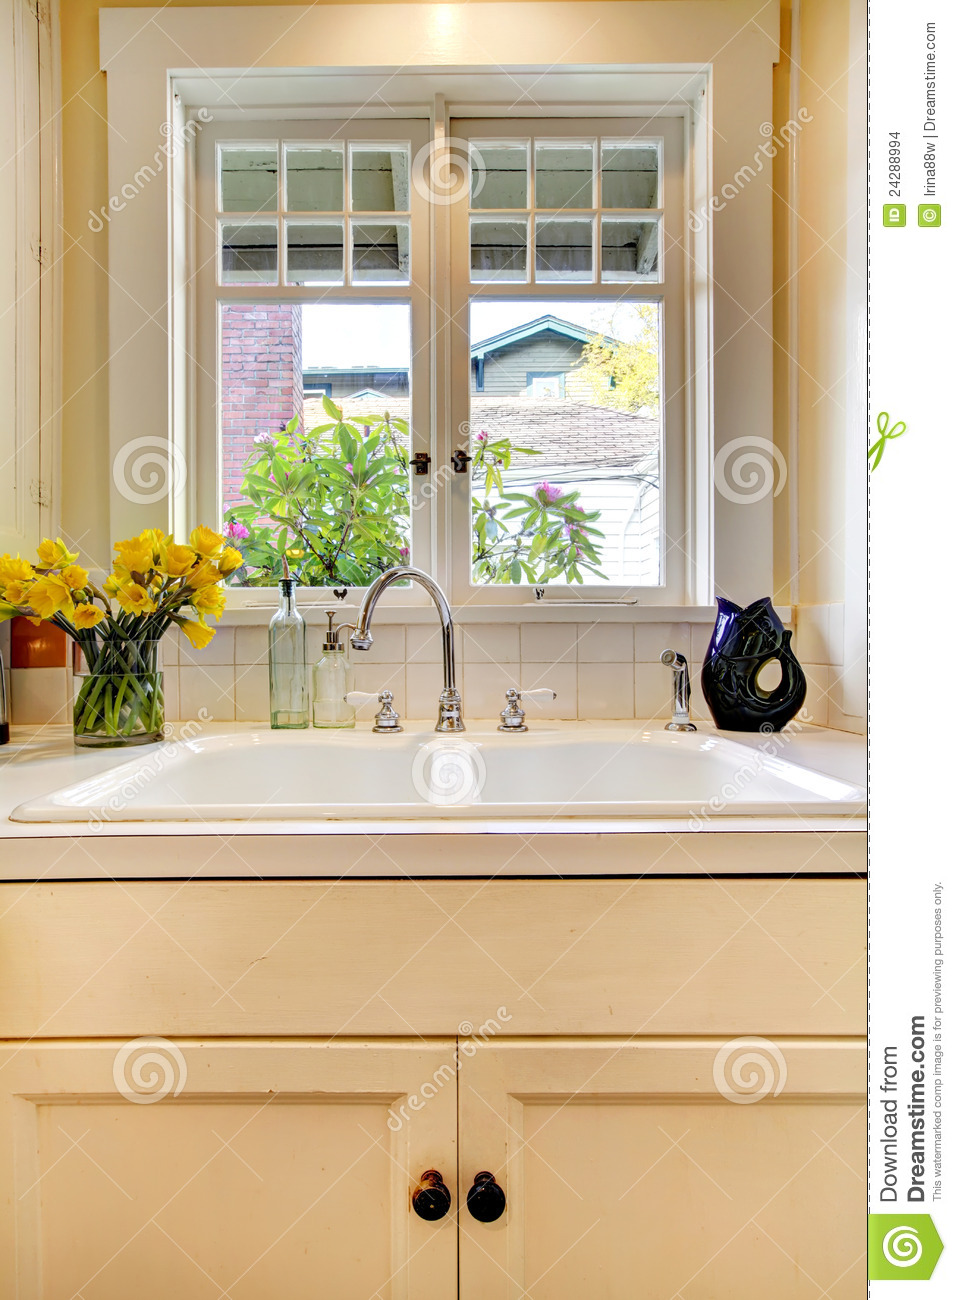 Incredible Kitchen Cabinets with Sink and Windows 957 x 1300 · 346 kB · jpeg